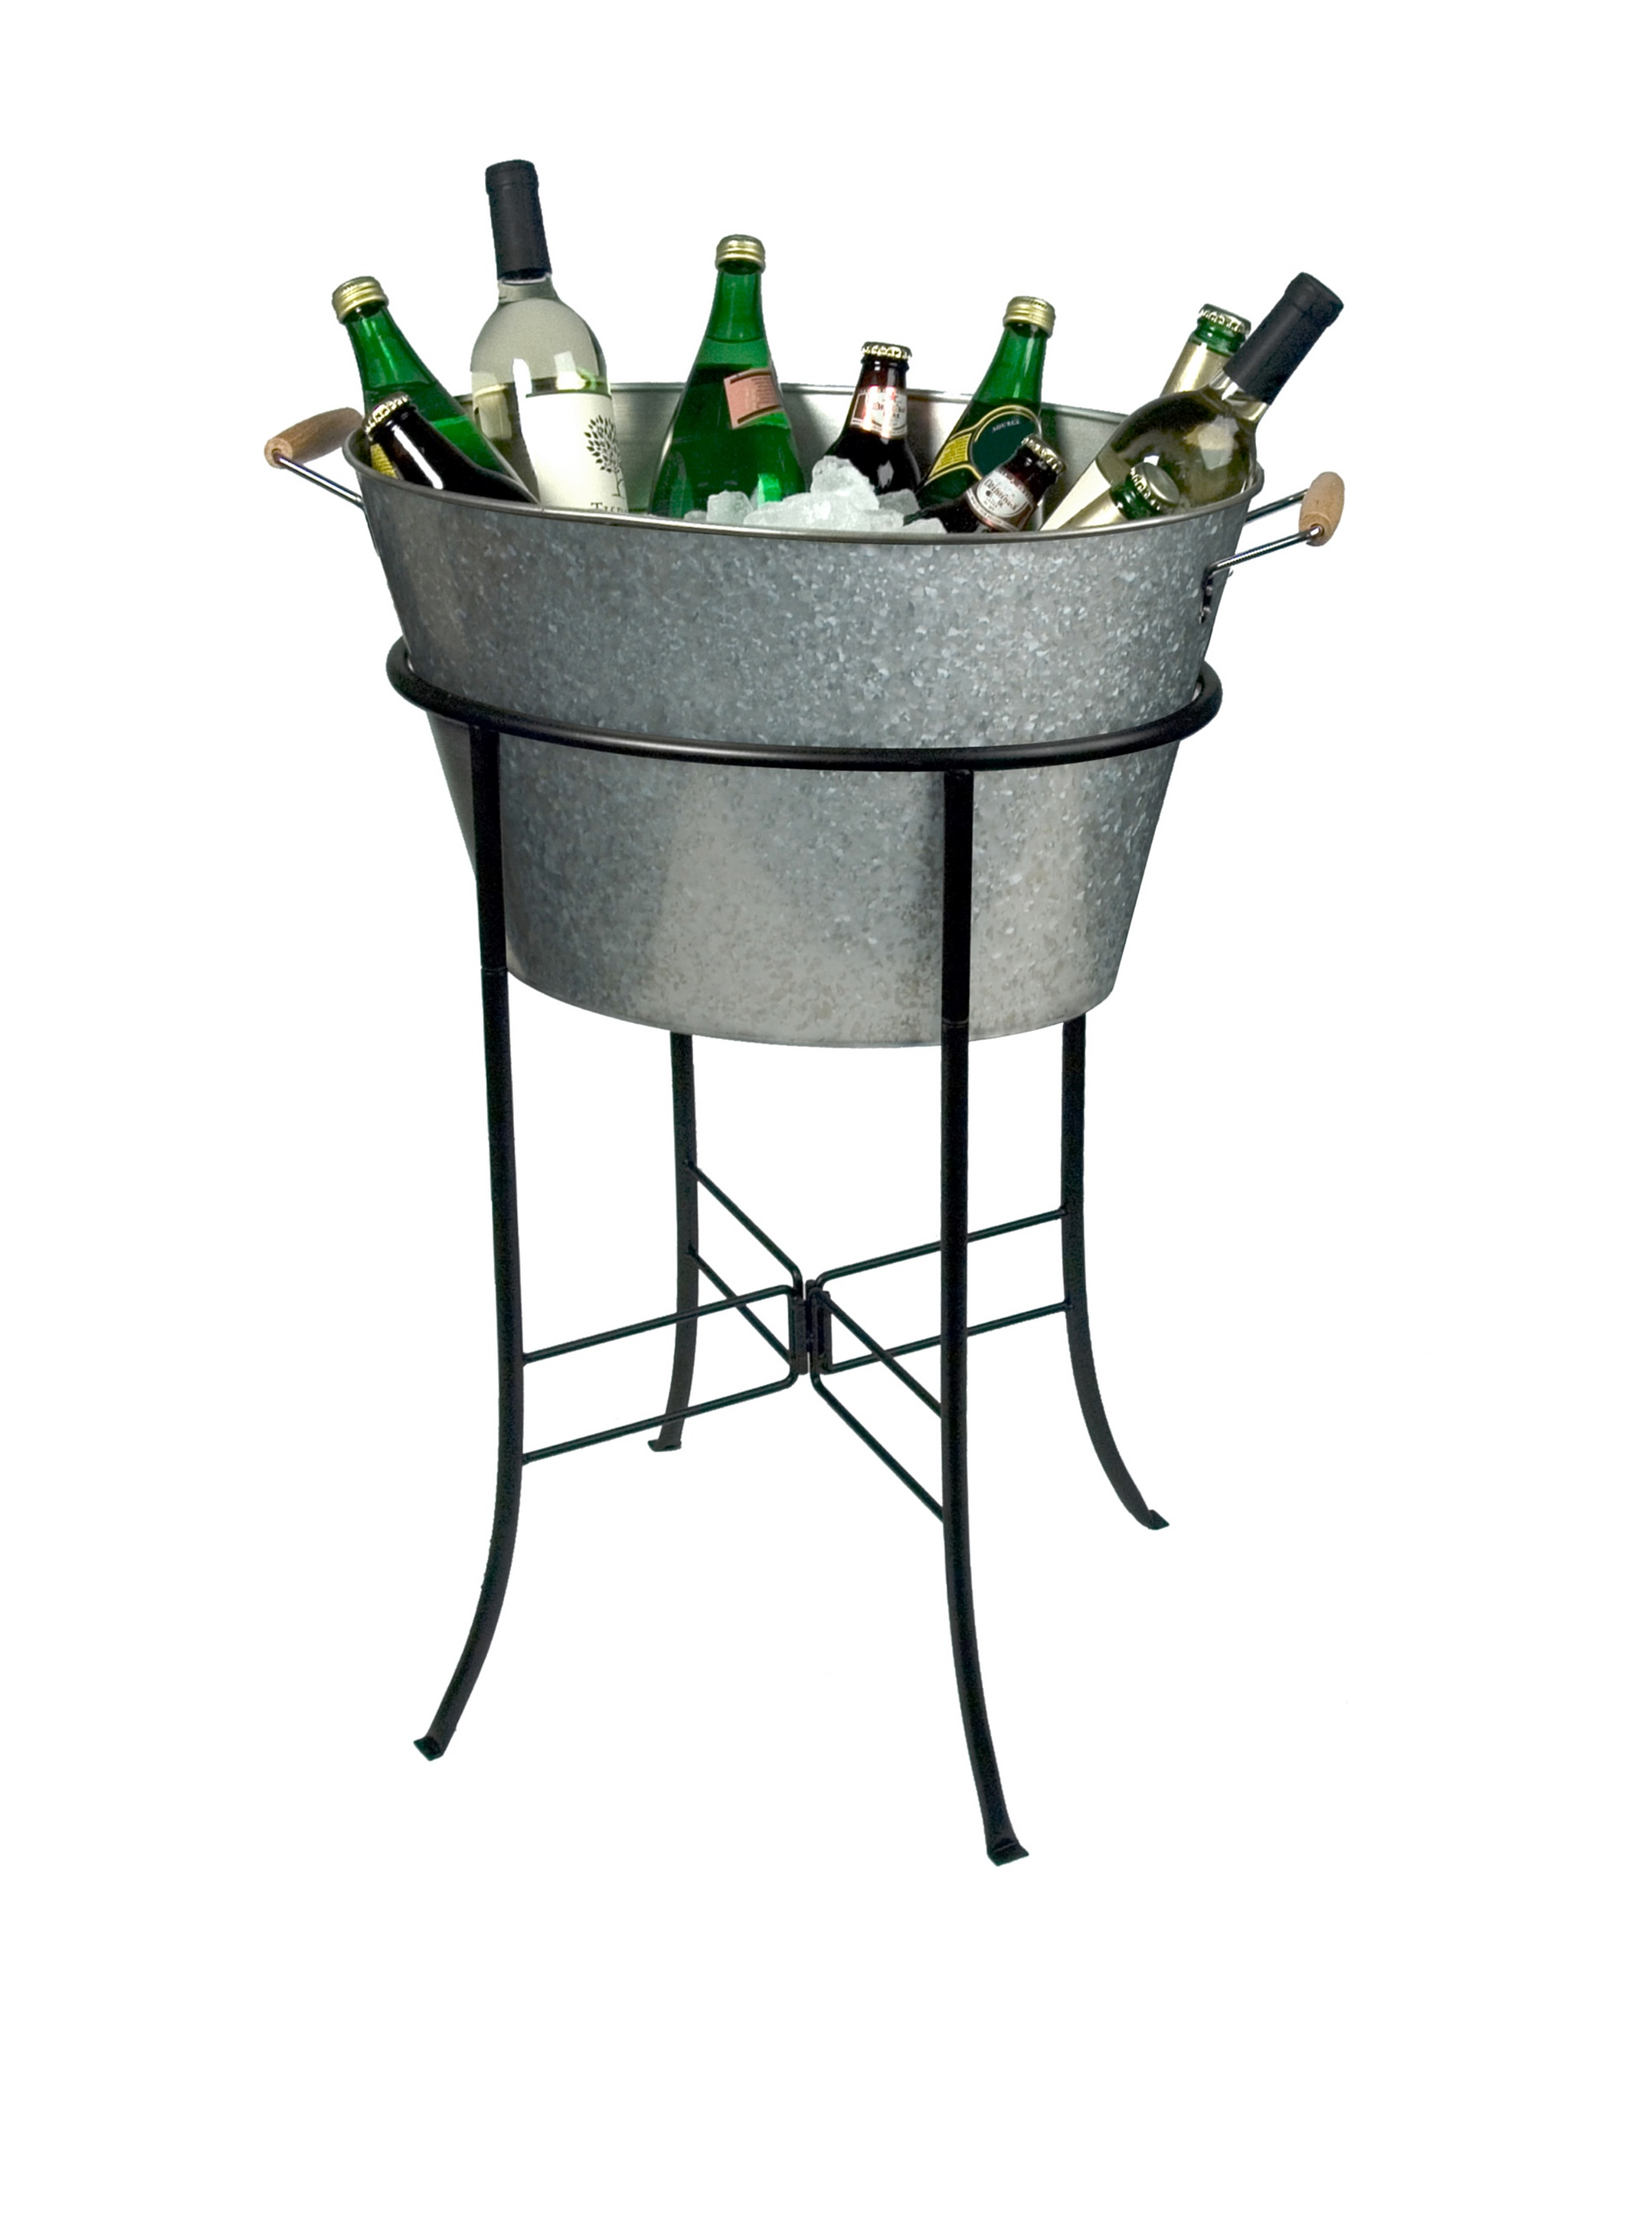 Artland Oasis Party Tub with Stand, Galvanized, Metal